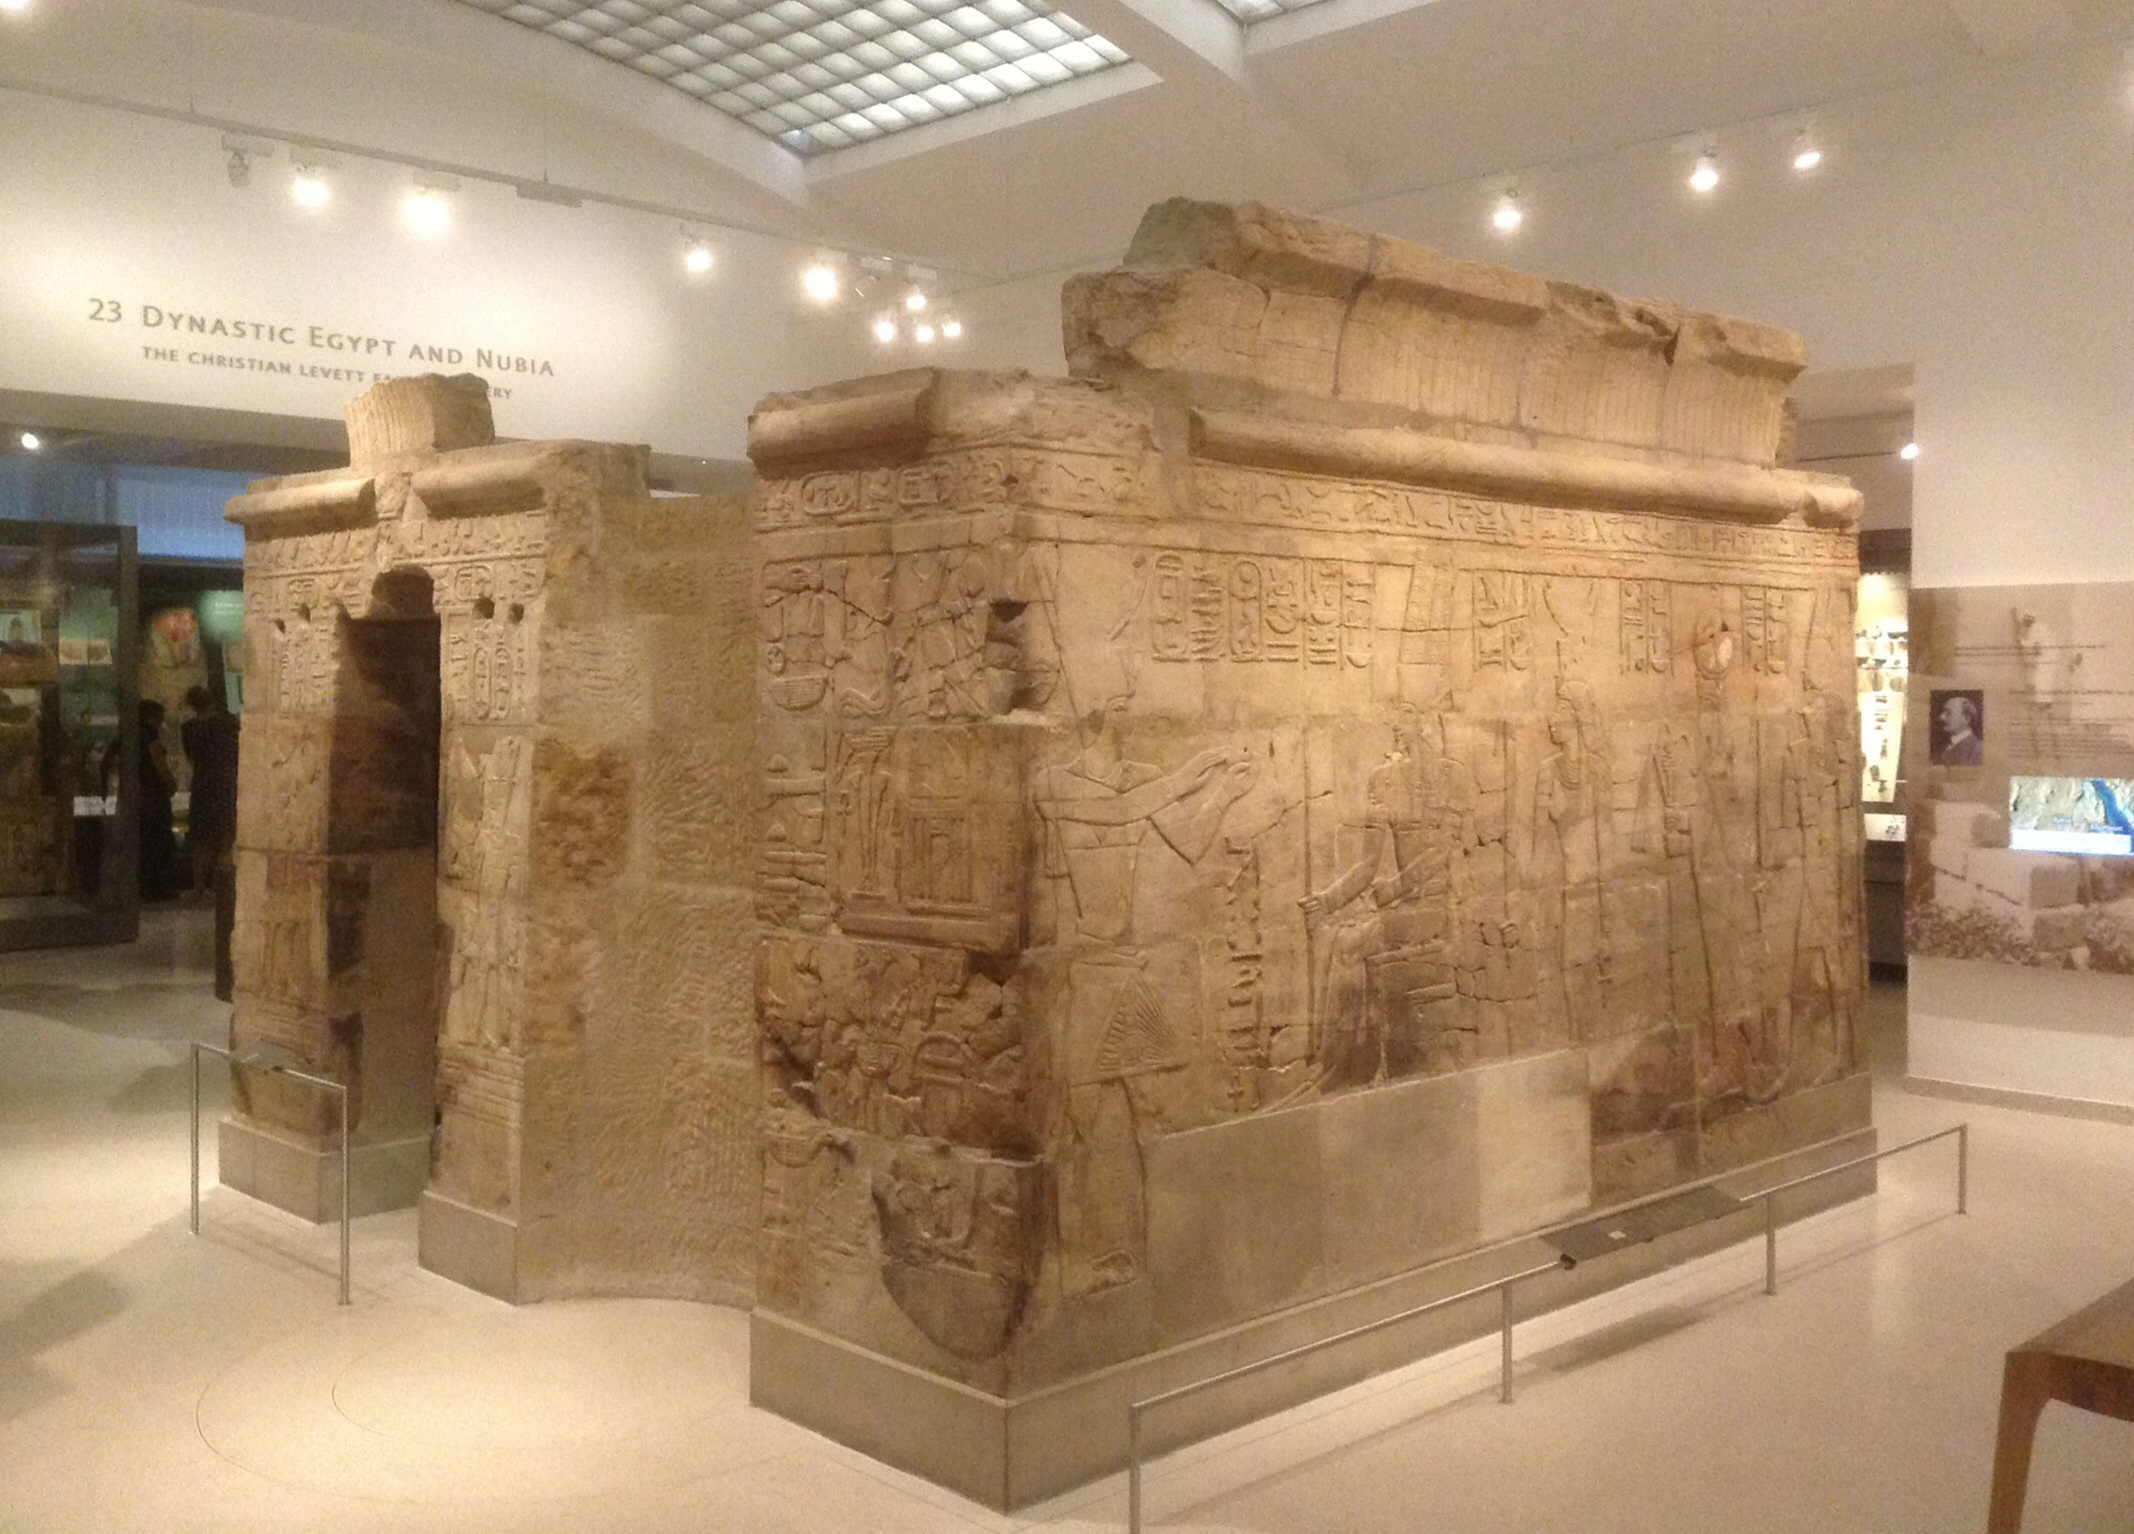 One of the new Egyptian galleries at the Ashmolean, prominently featuring the shrine of King Taharqa